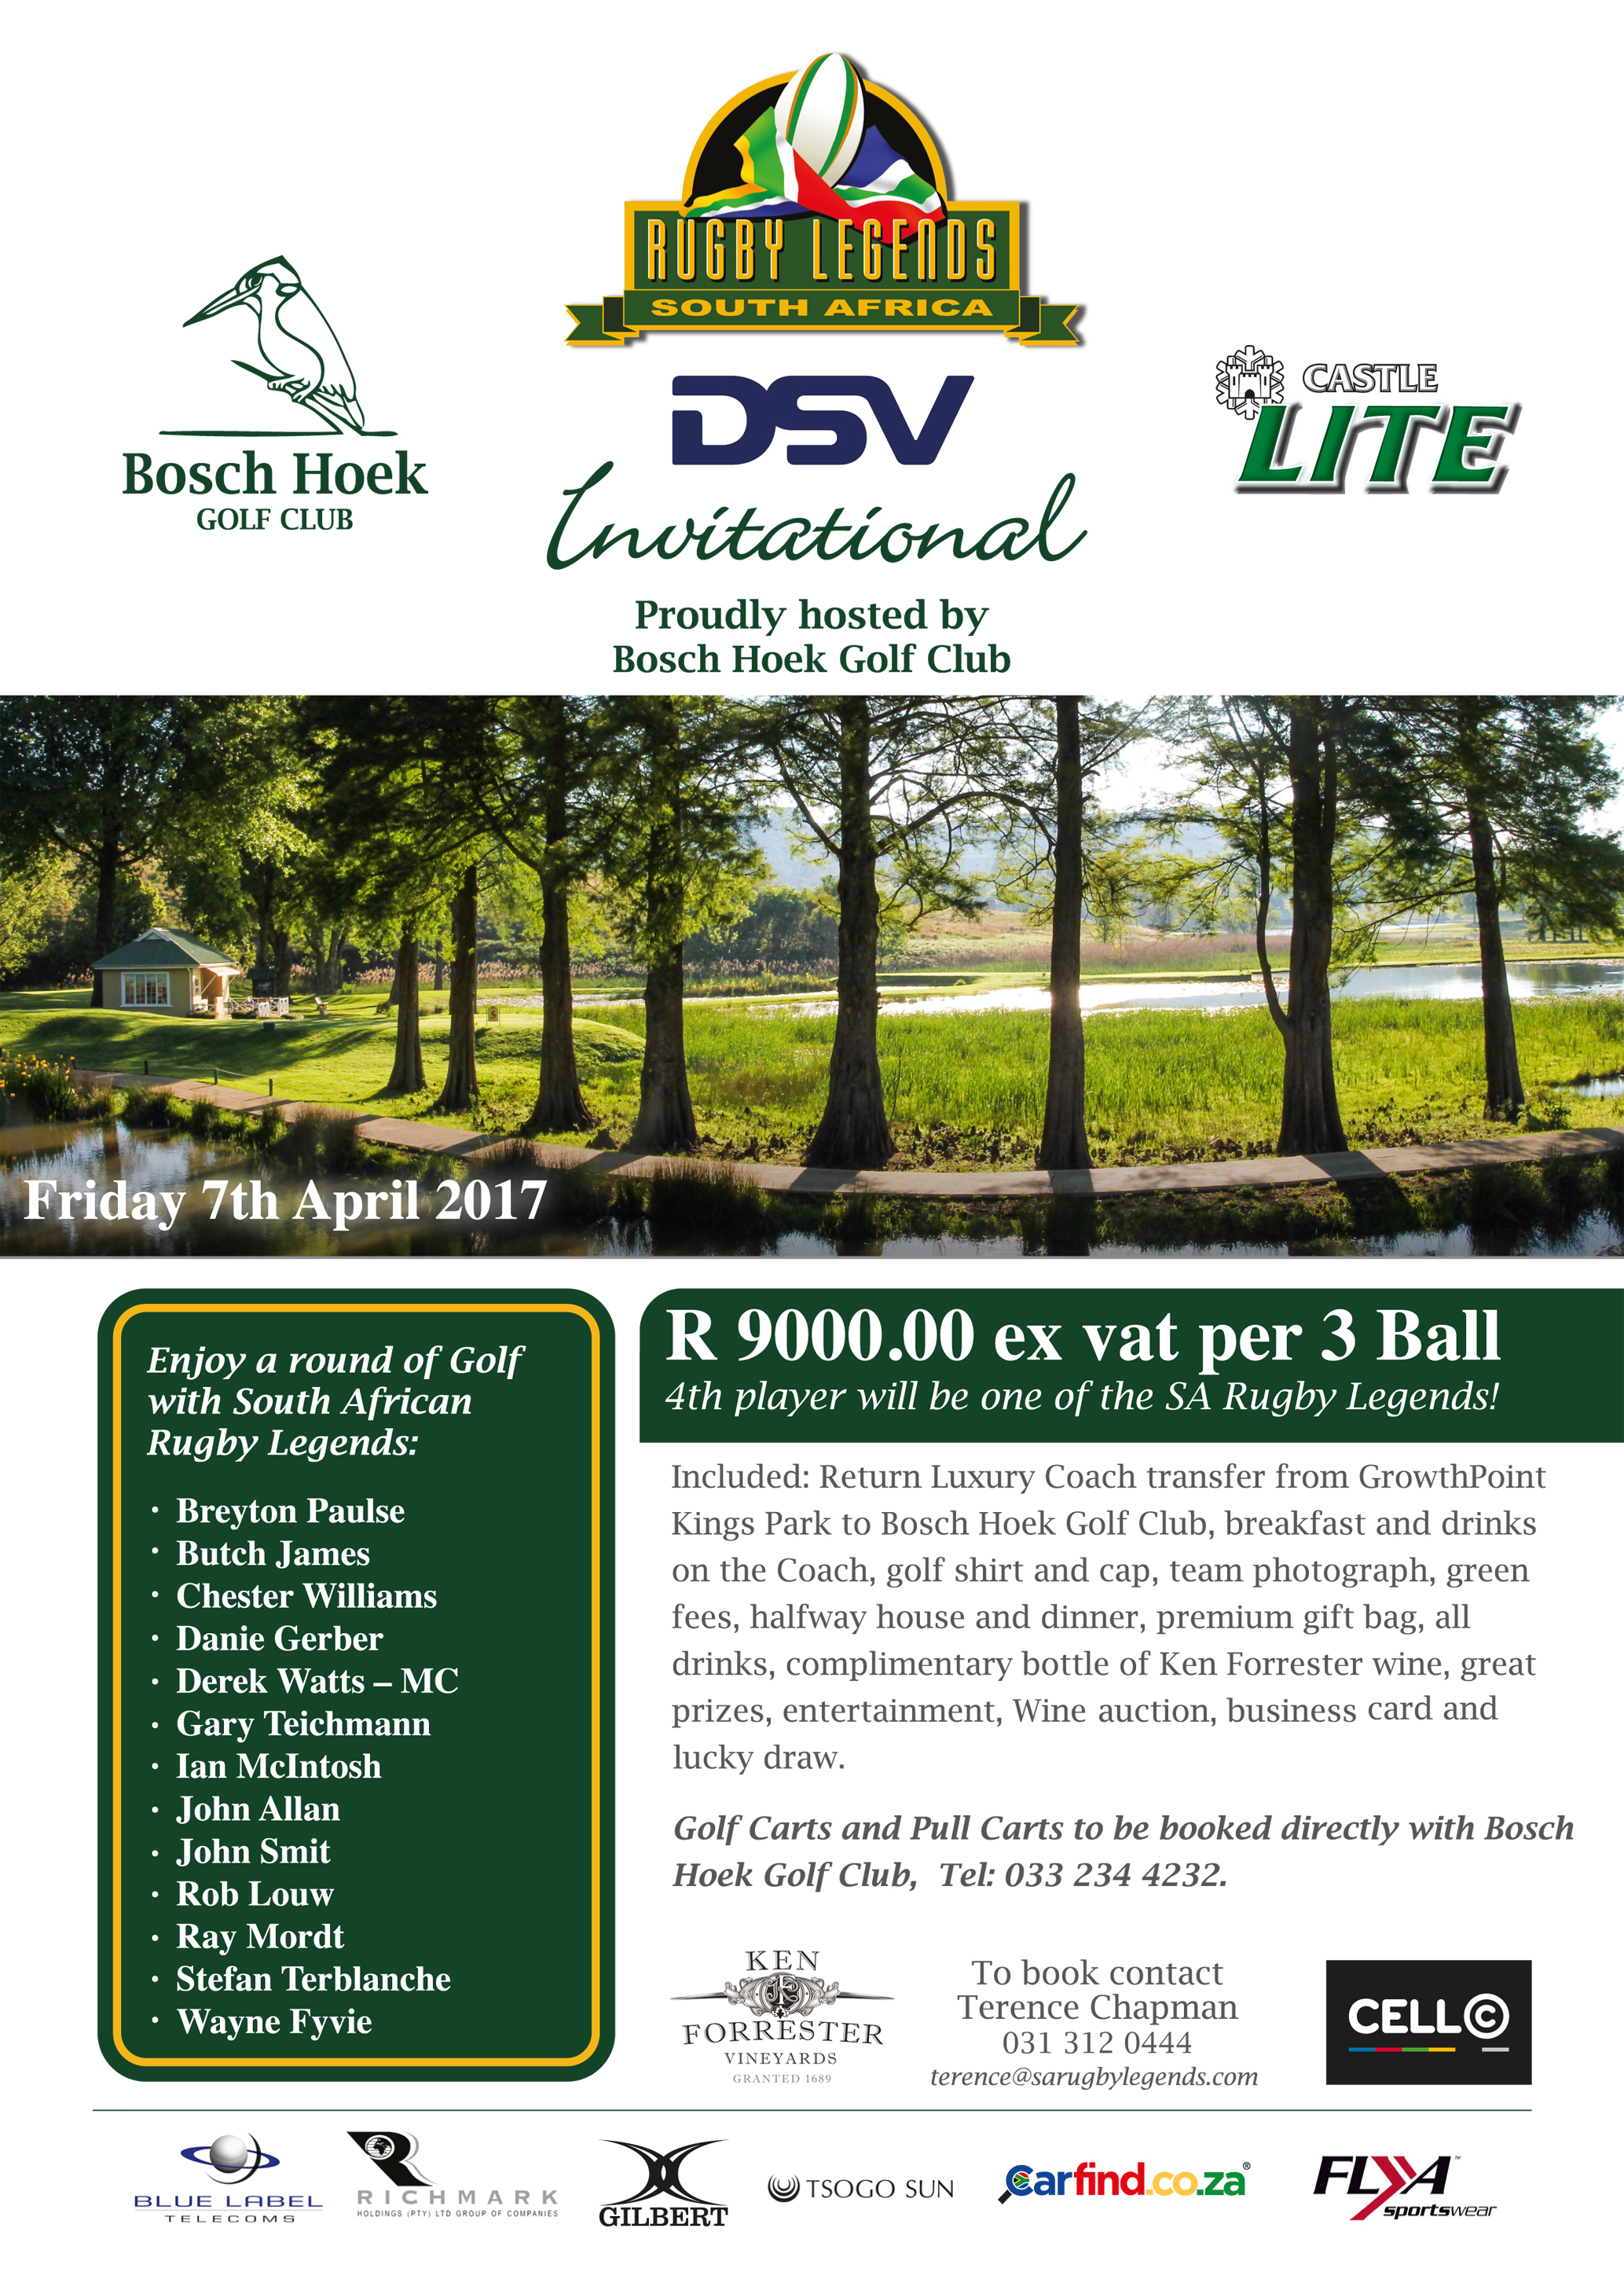 DSV SA Rugby Legends Invitational